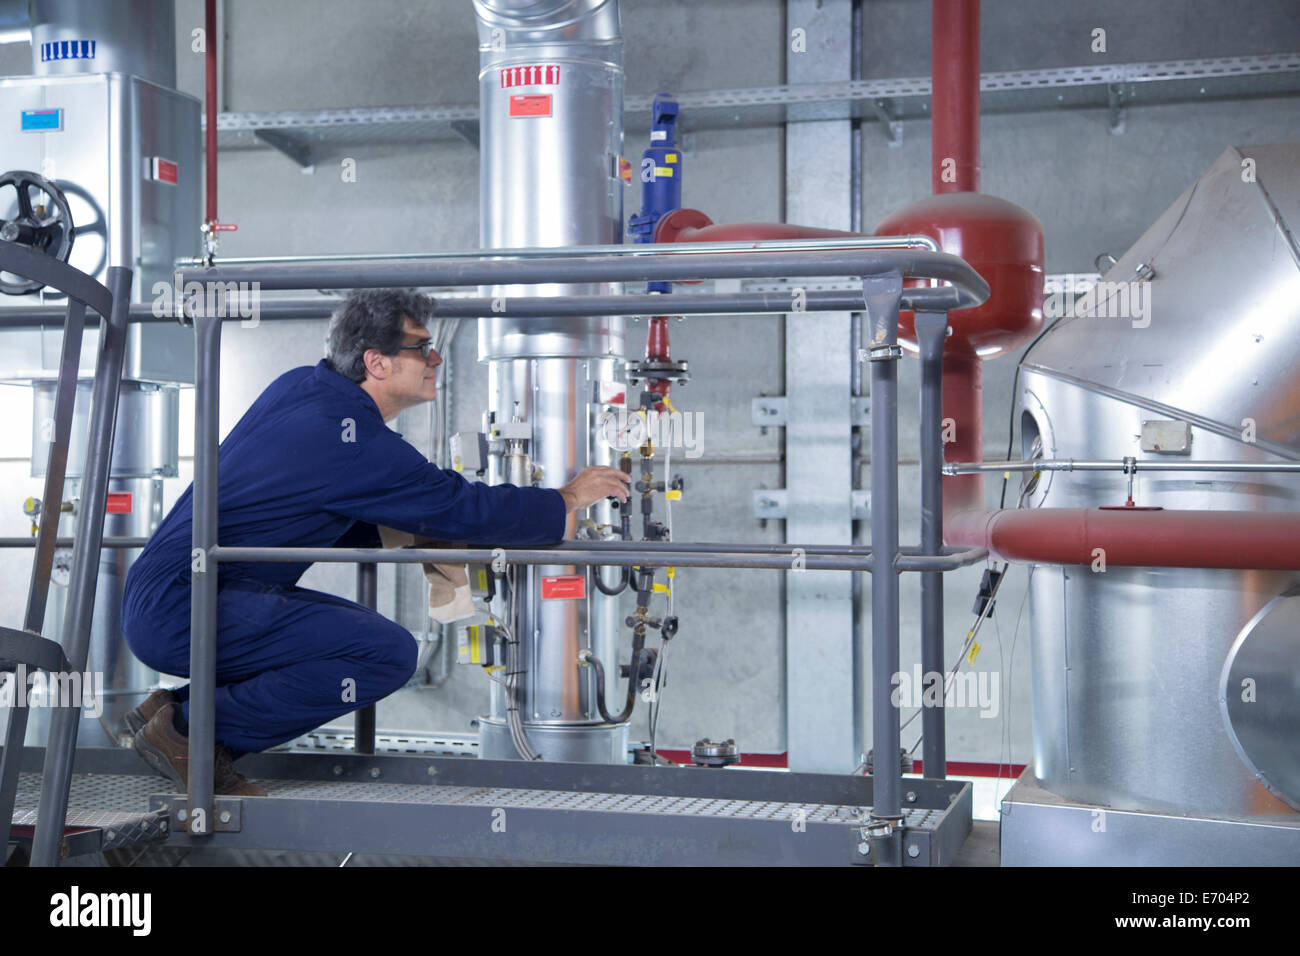 Engineer inspecting equipment from access platform in power station - Stock Image